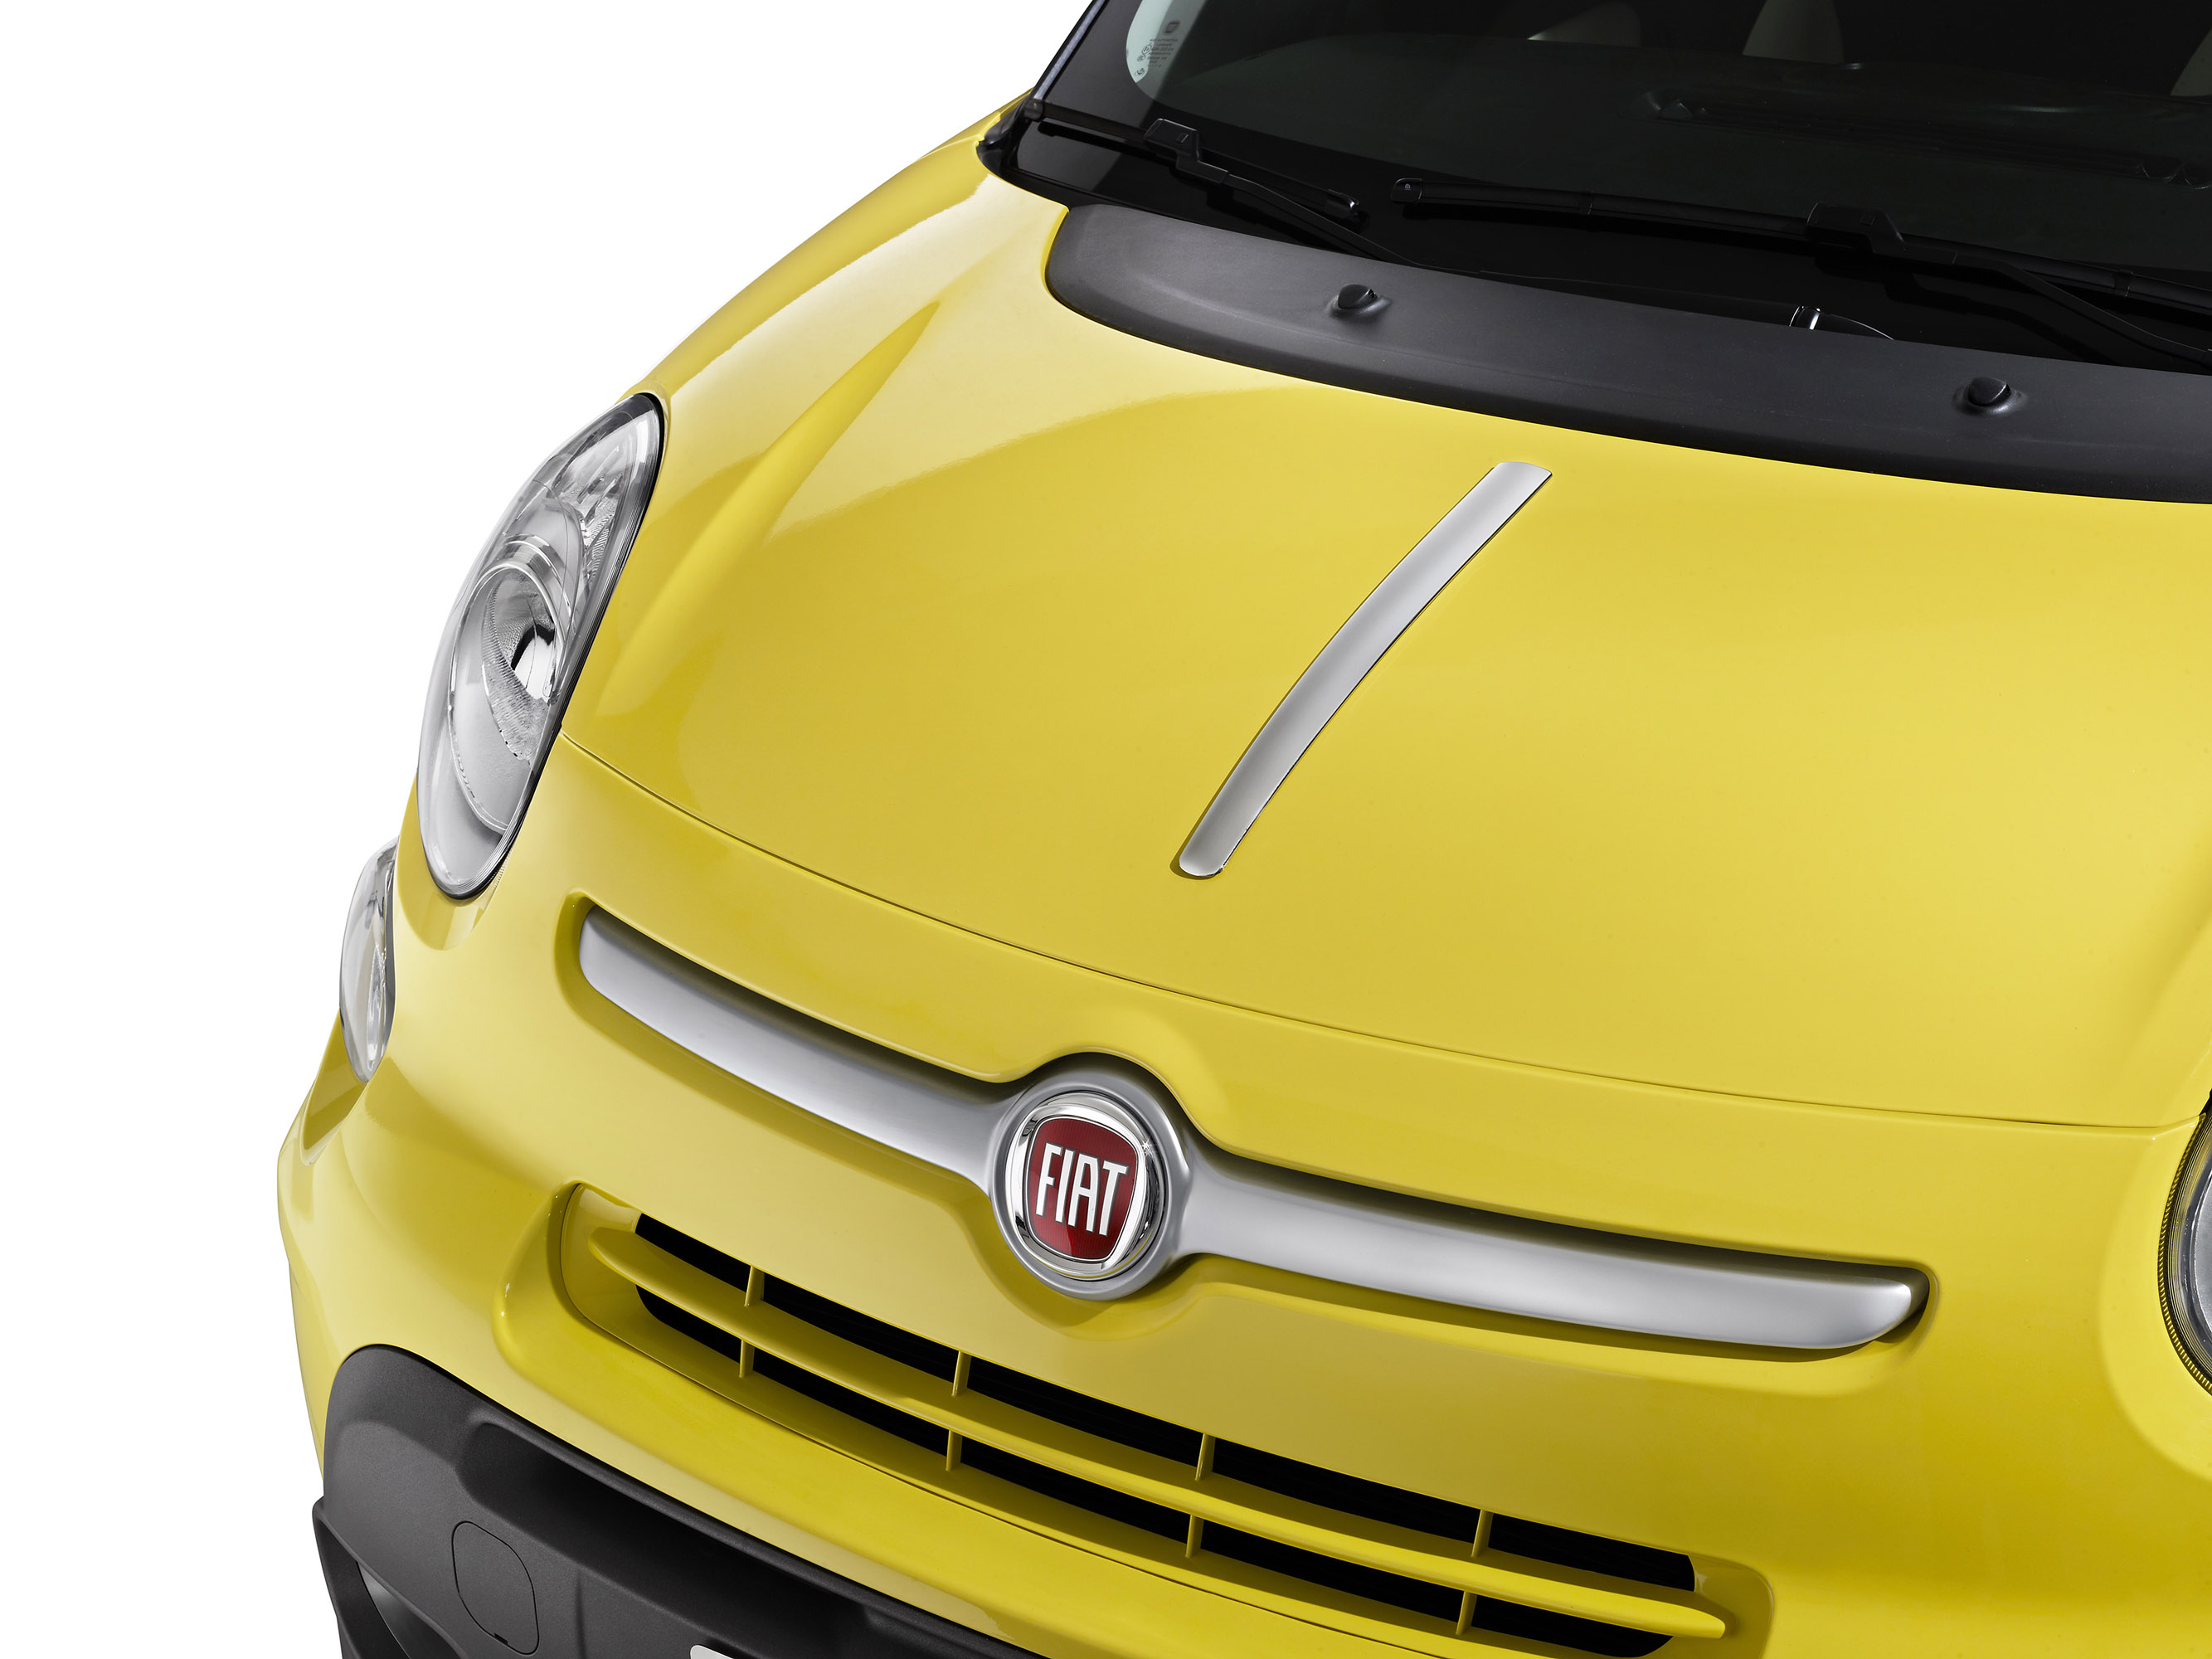 pictures photo review seicento adventure look fiat images amazing and reviews at